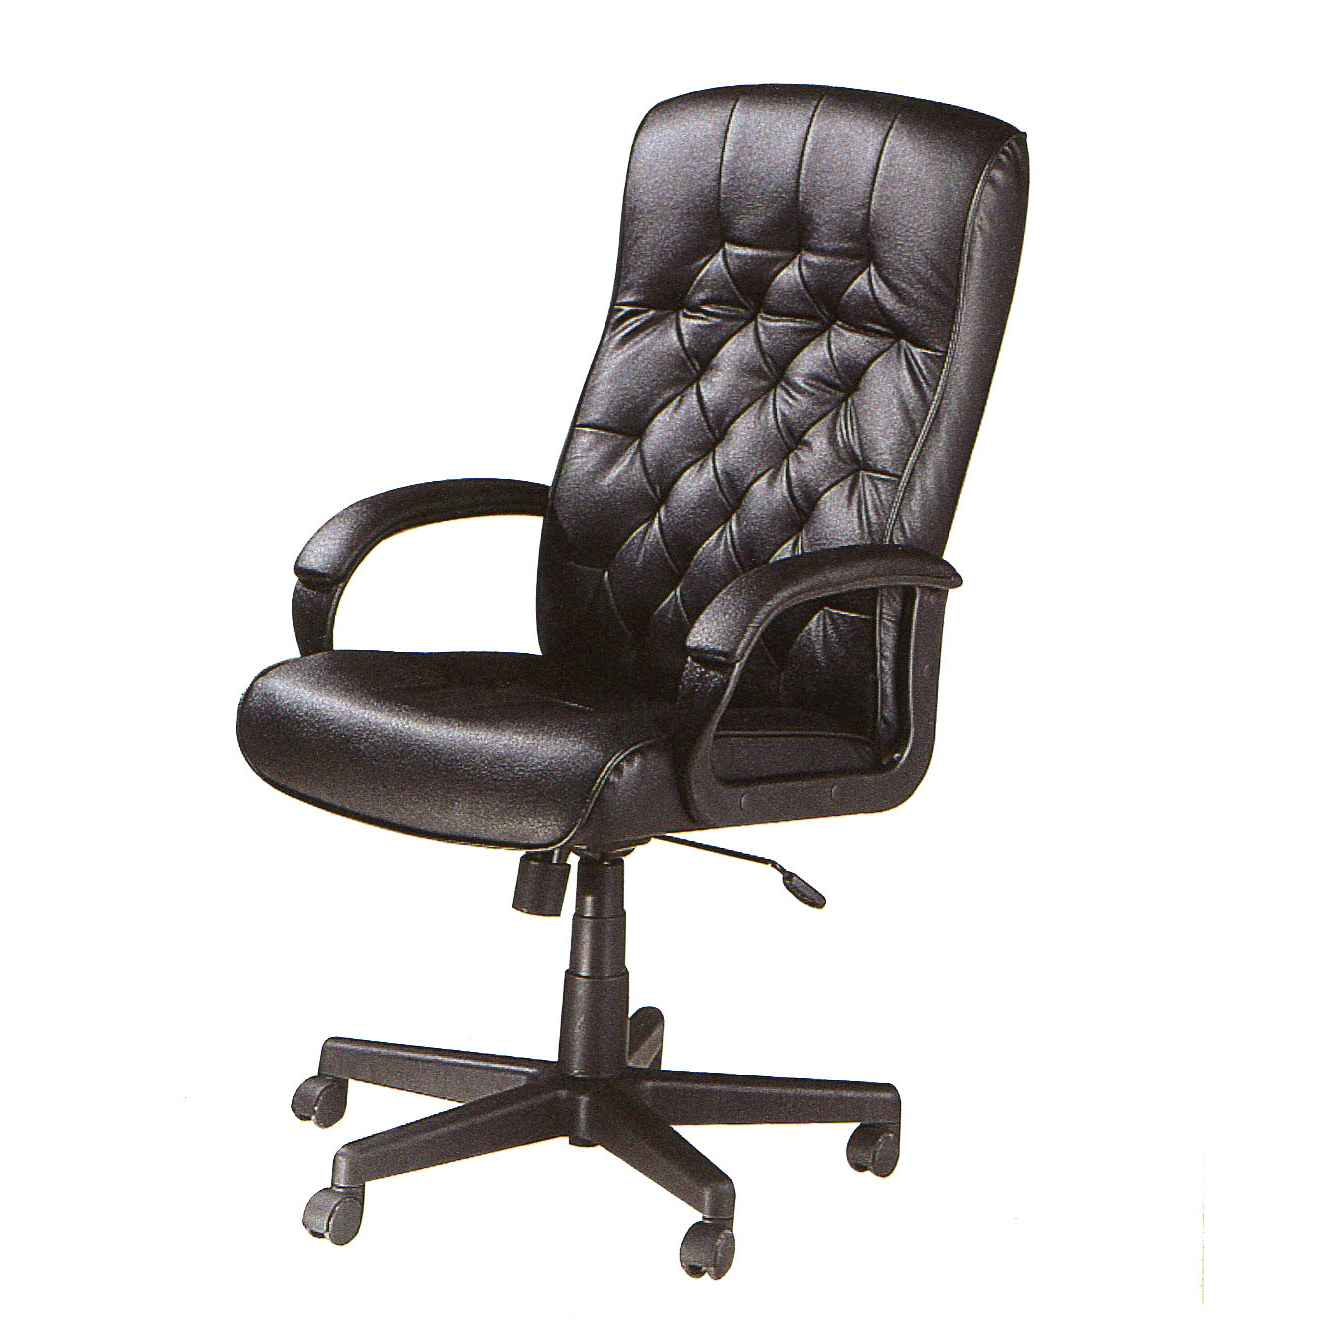 Comfortable Black Leather Office Computer Chair